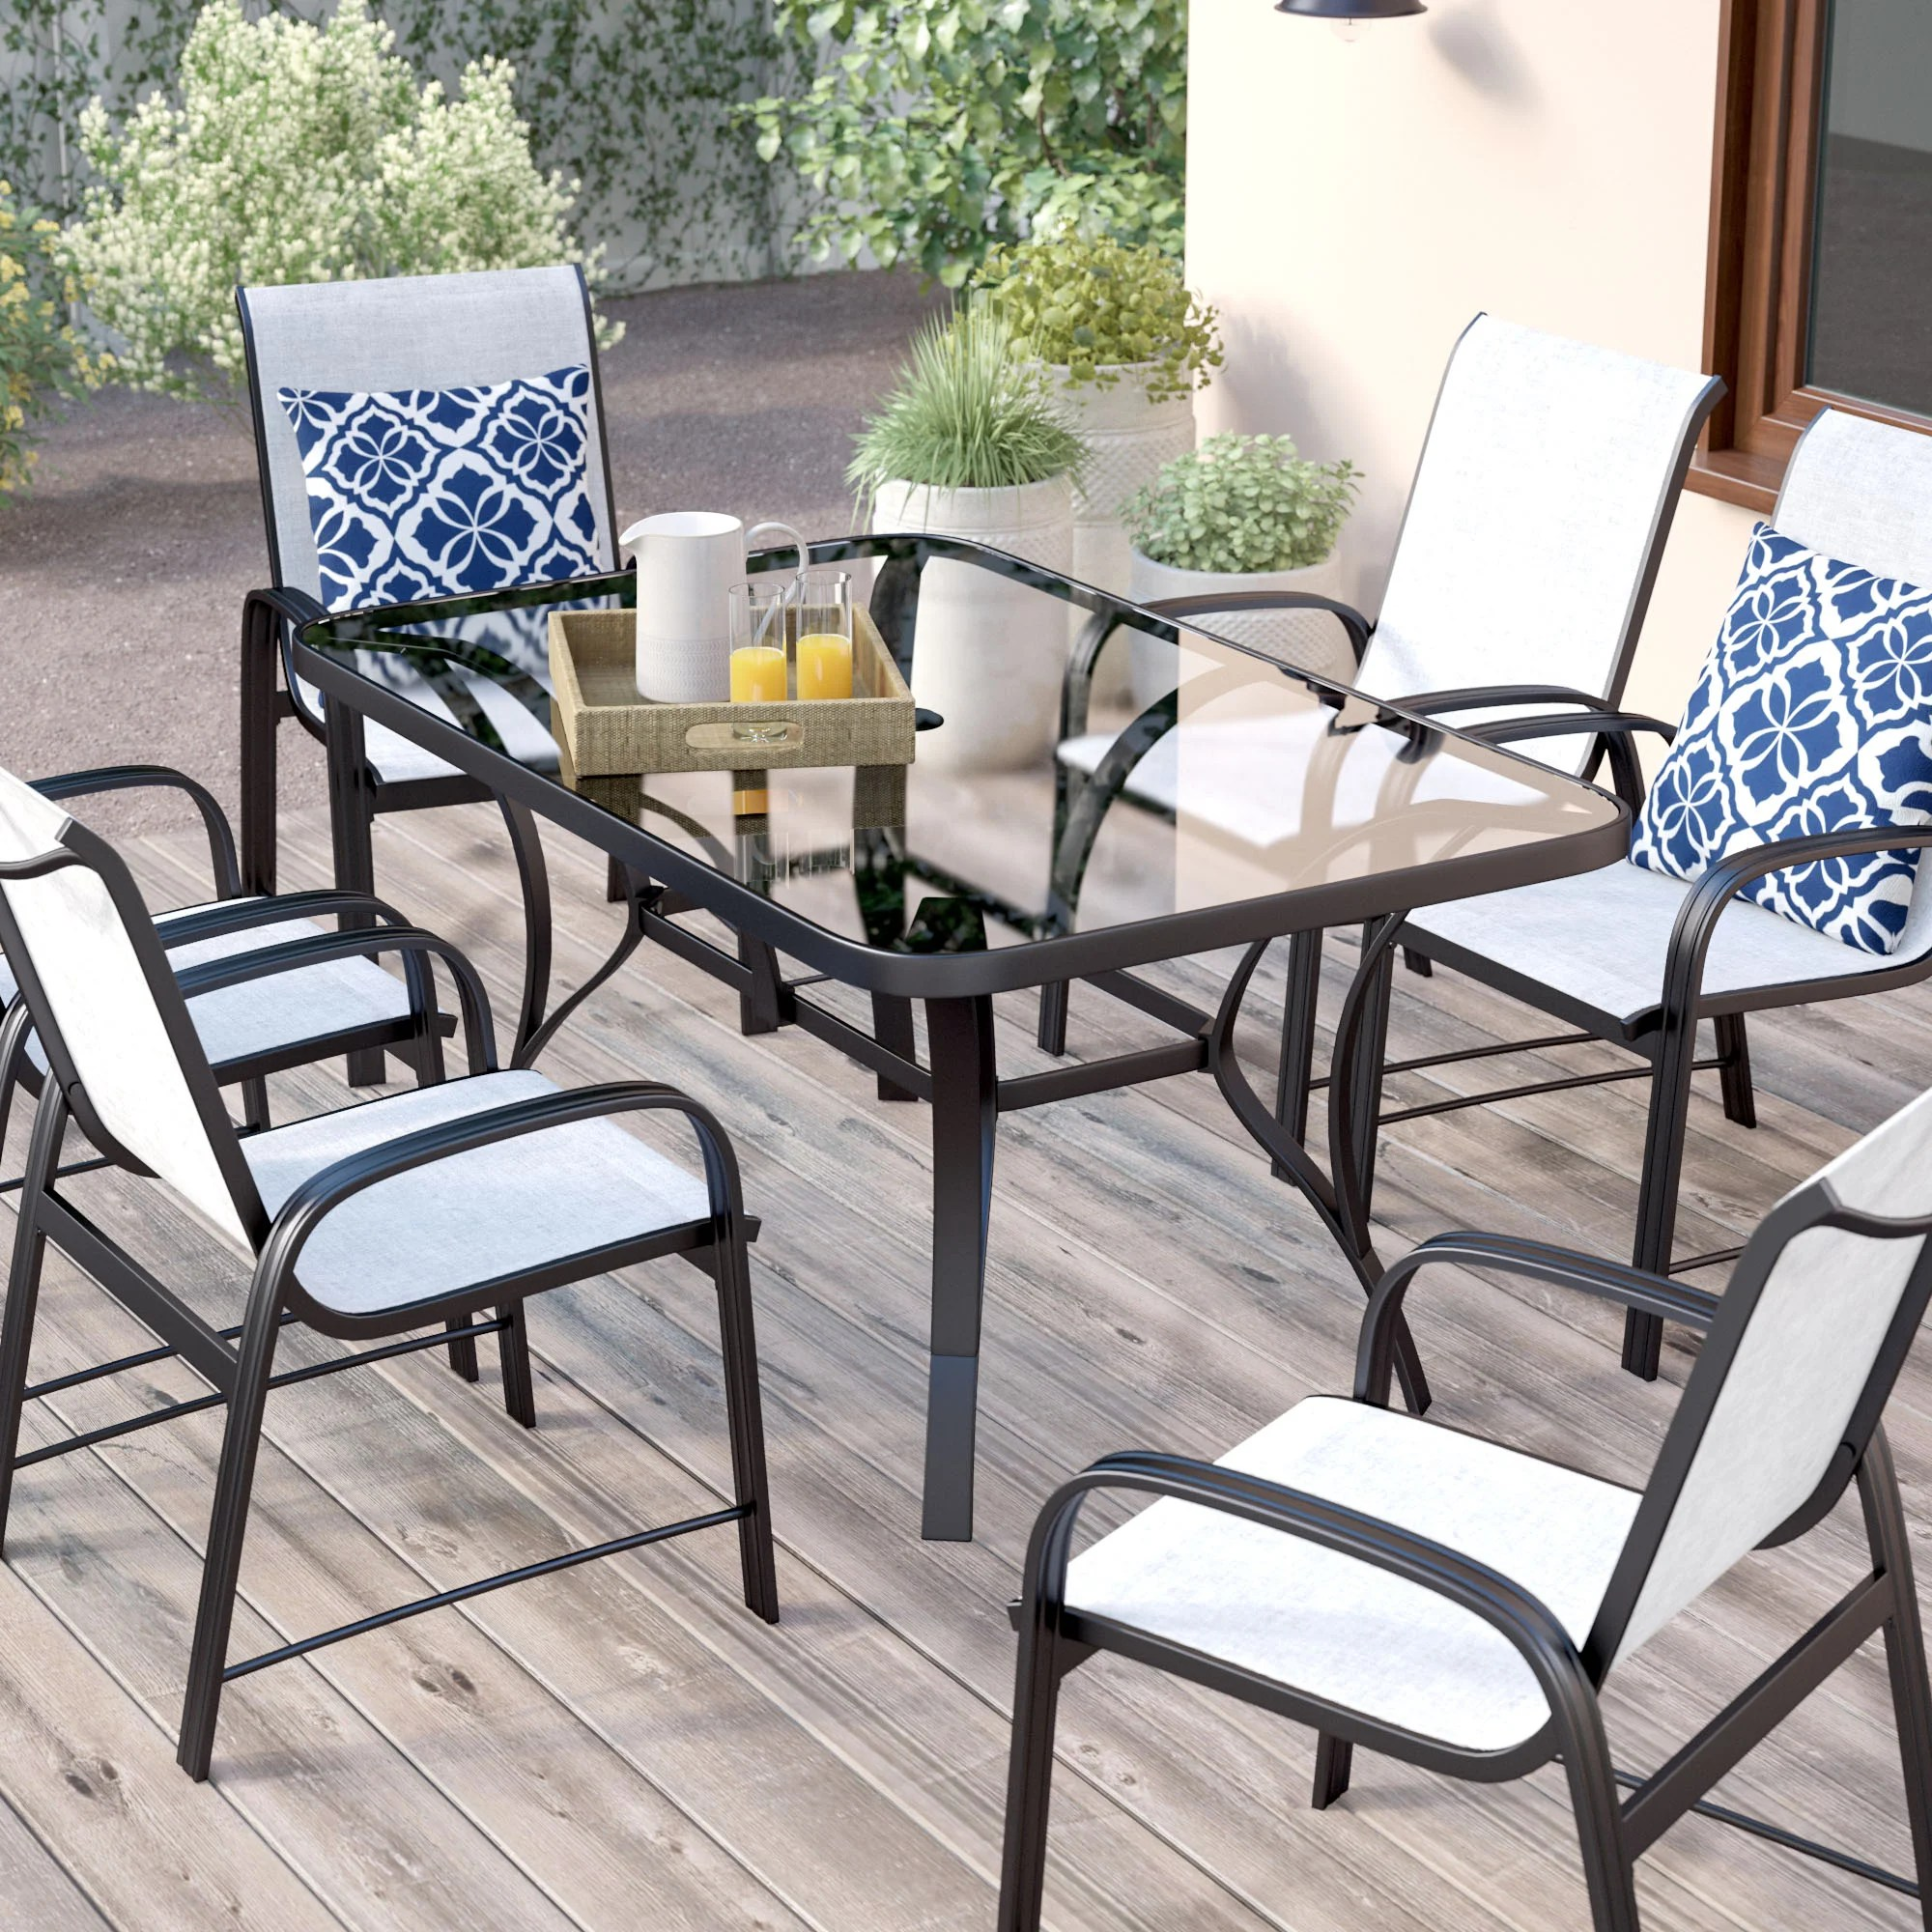 Outdoor Furniture Hamilton 2020 Home Comforts - Outdoor Dining Furniture Clearance Melbourne